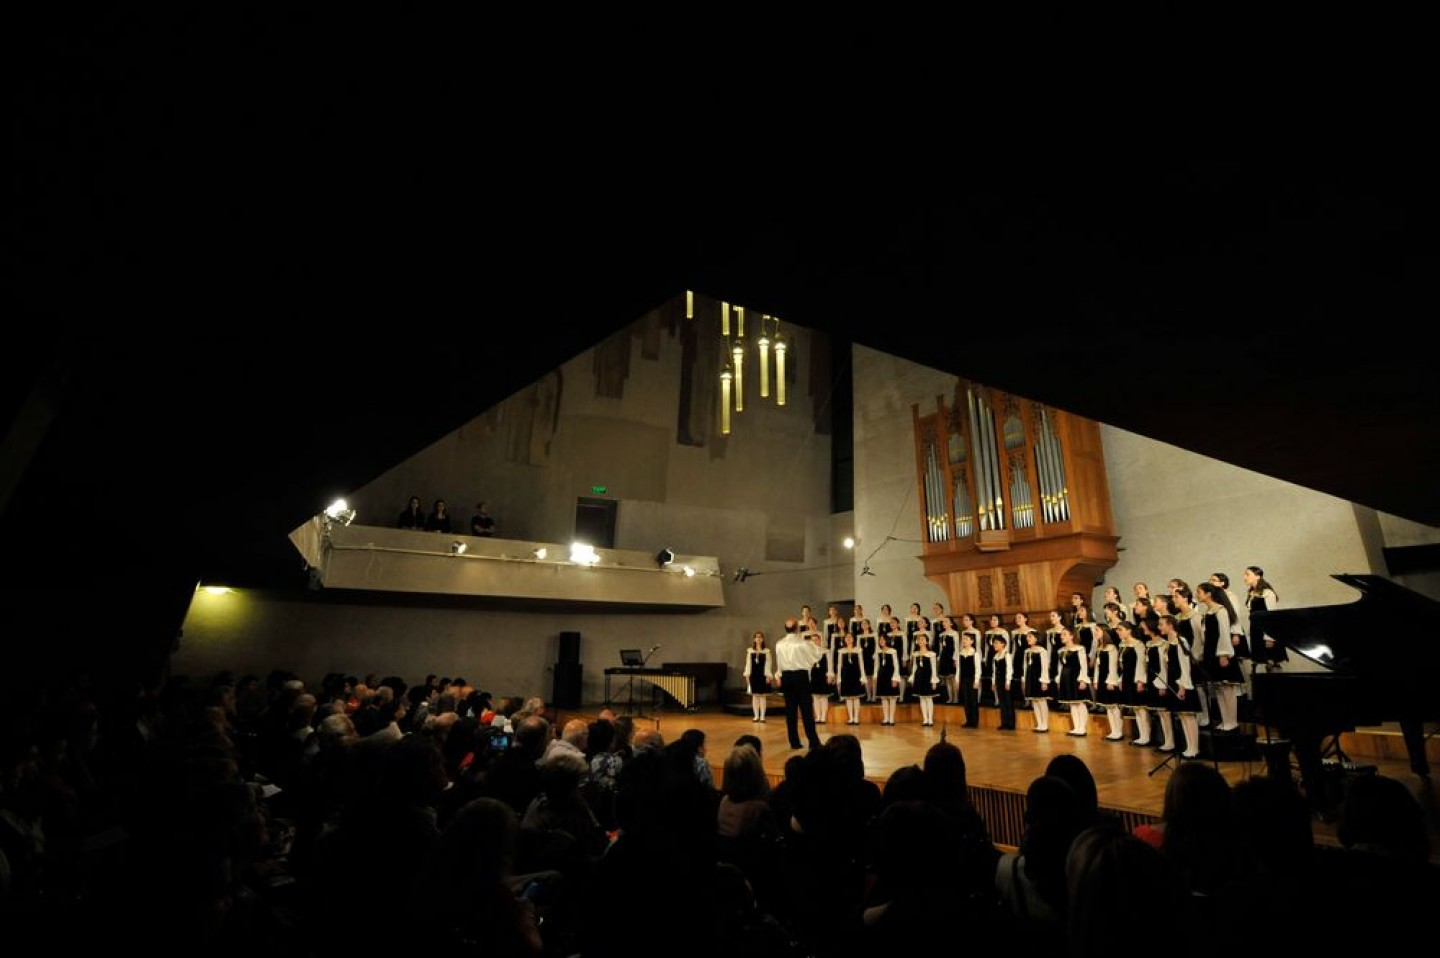 Little singers of Armenia media collection-Photogallery - Little Singers of Armenia - children's choir